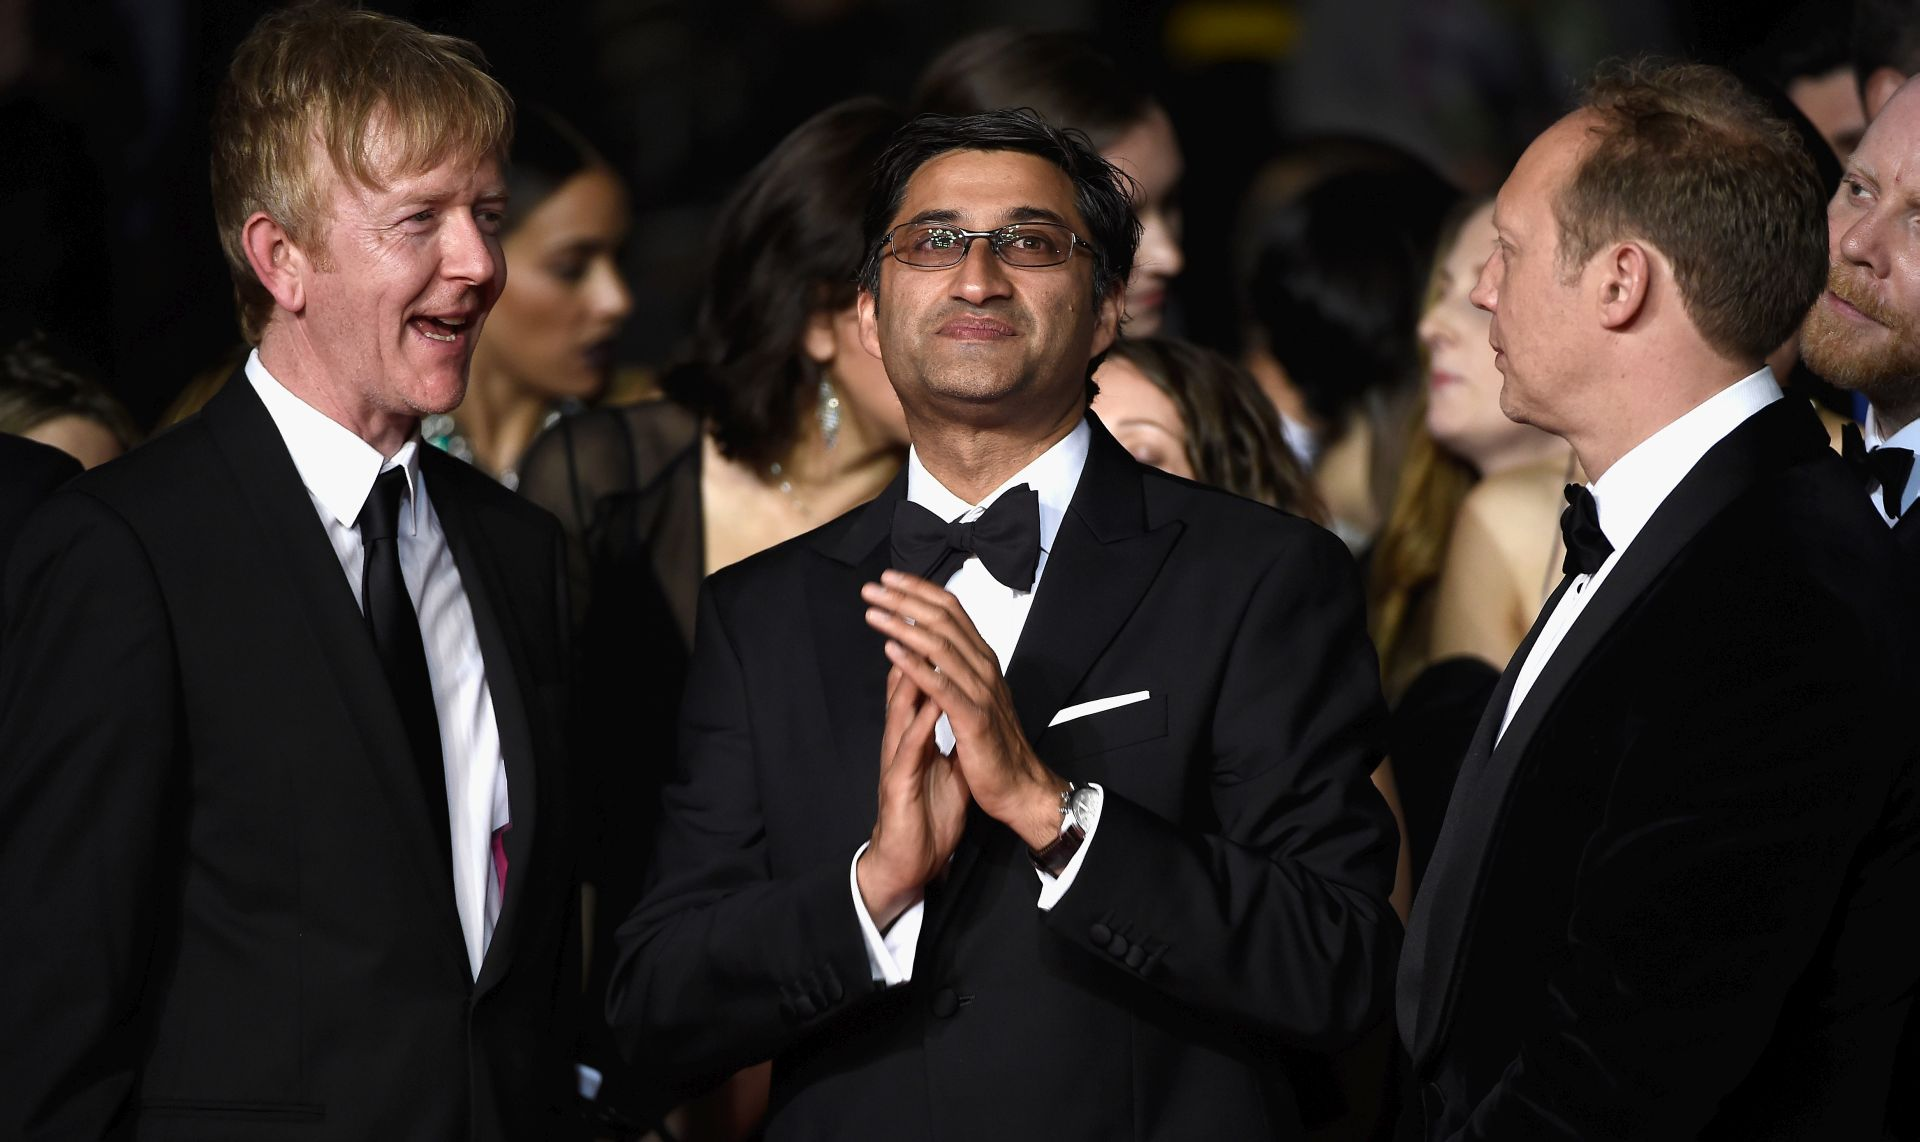 Chris King i Asif Kapadia. FOTO: Ian Gavan/Getty Images